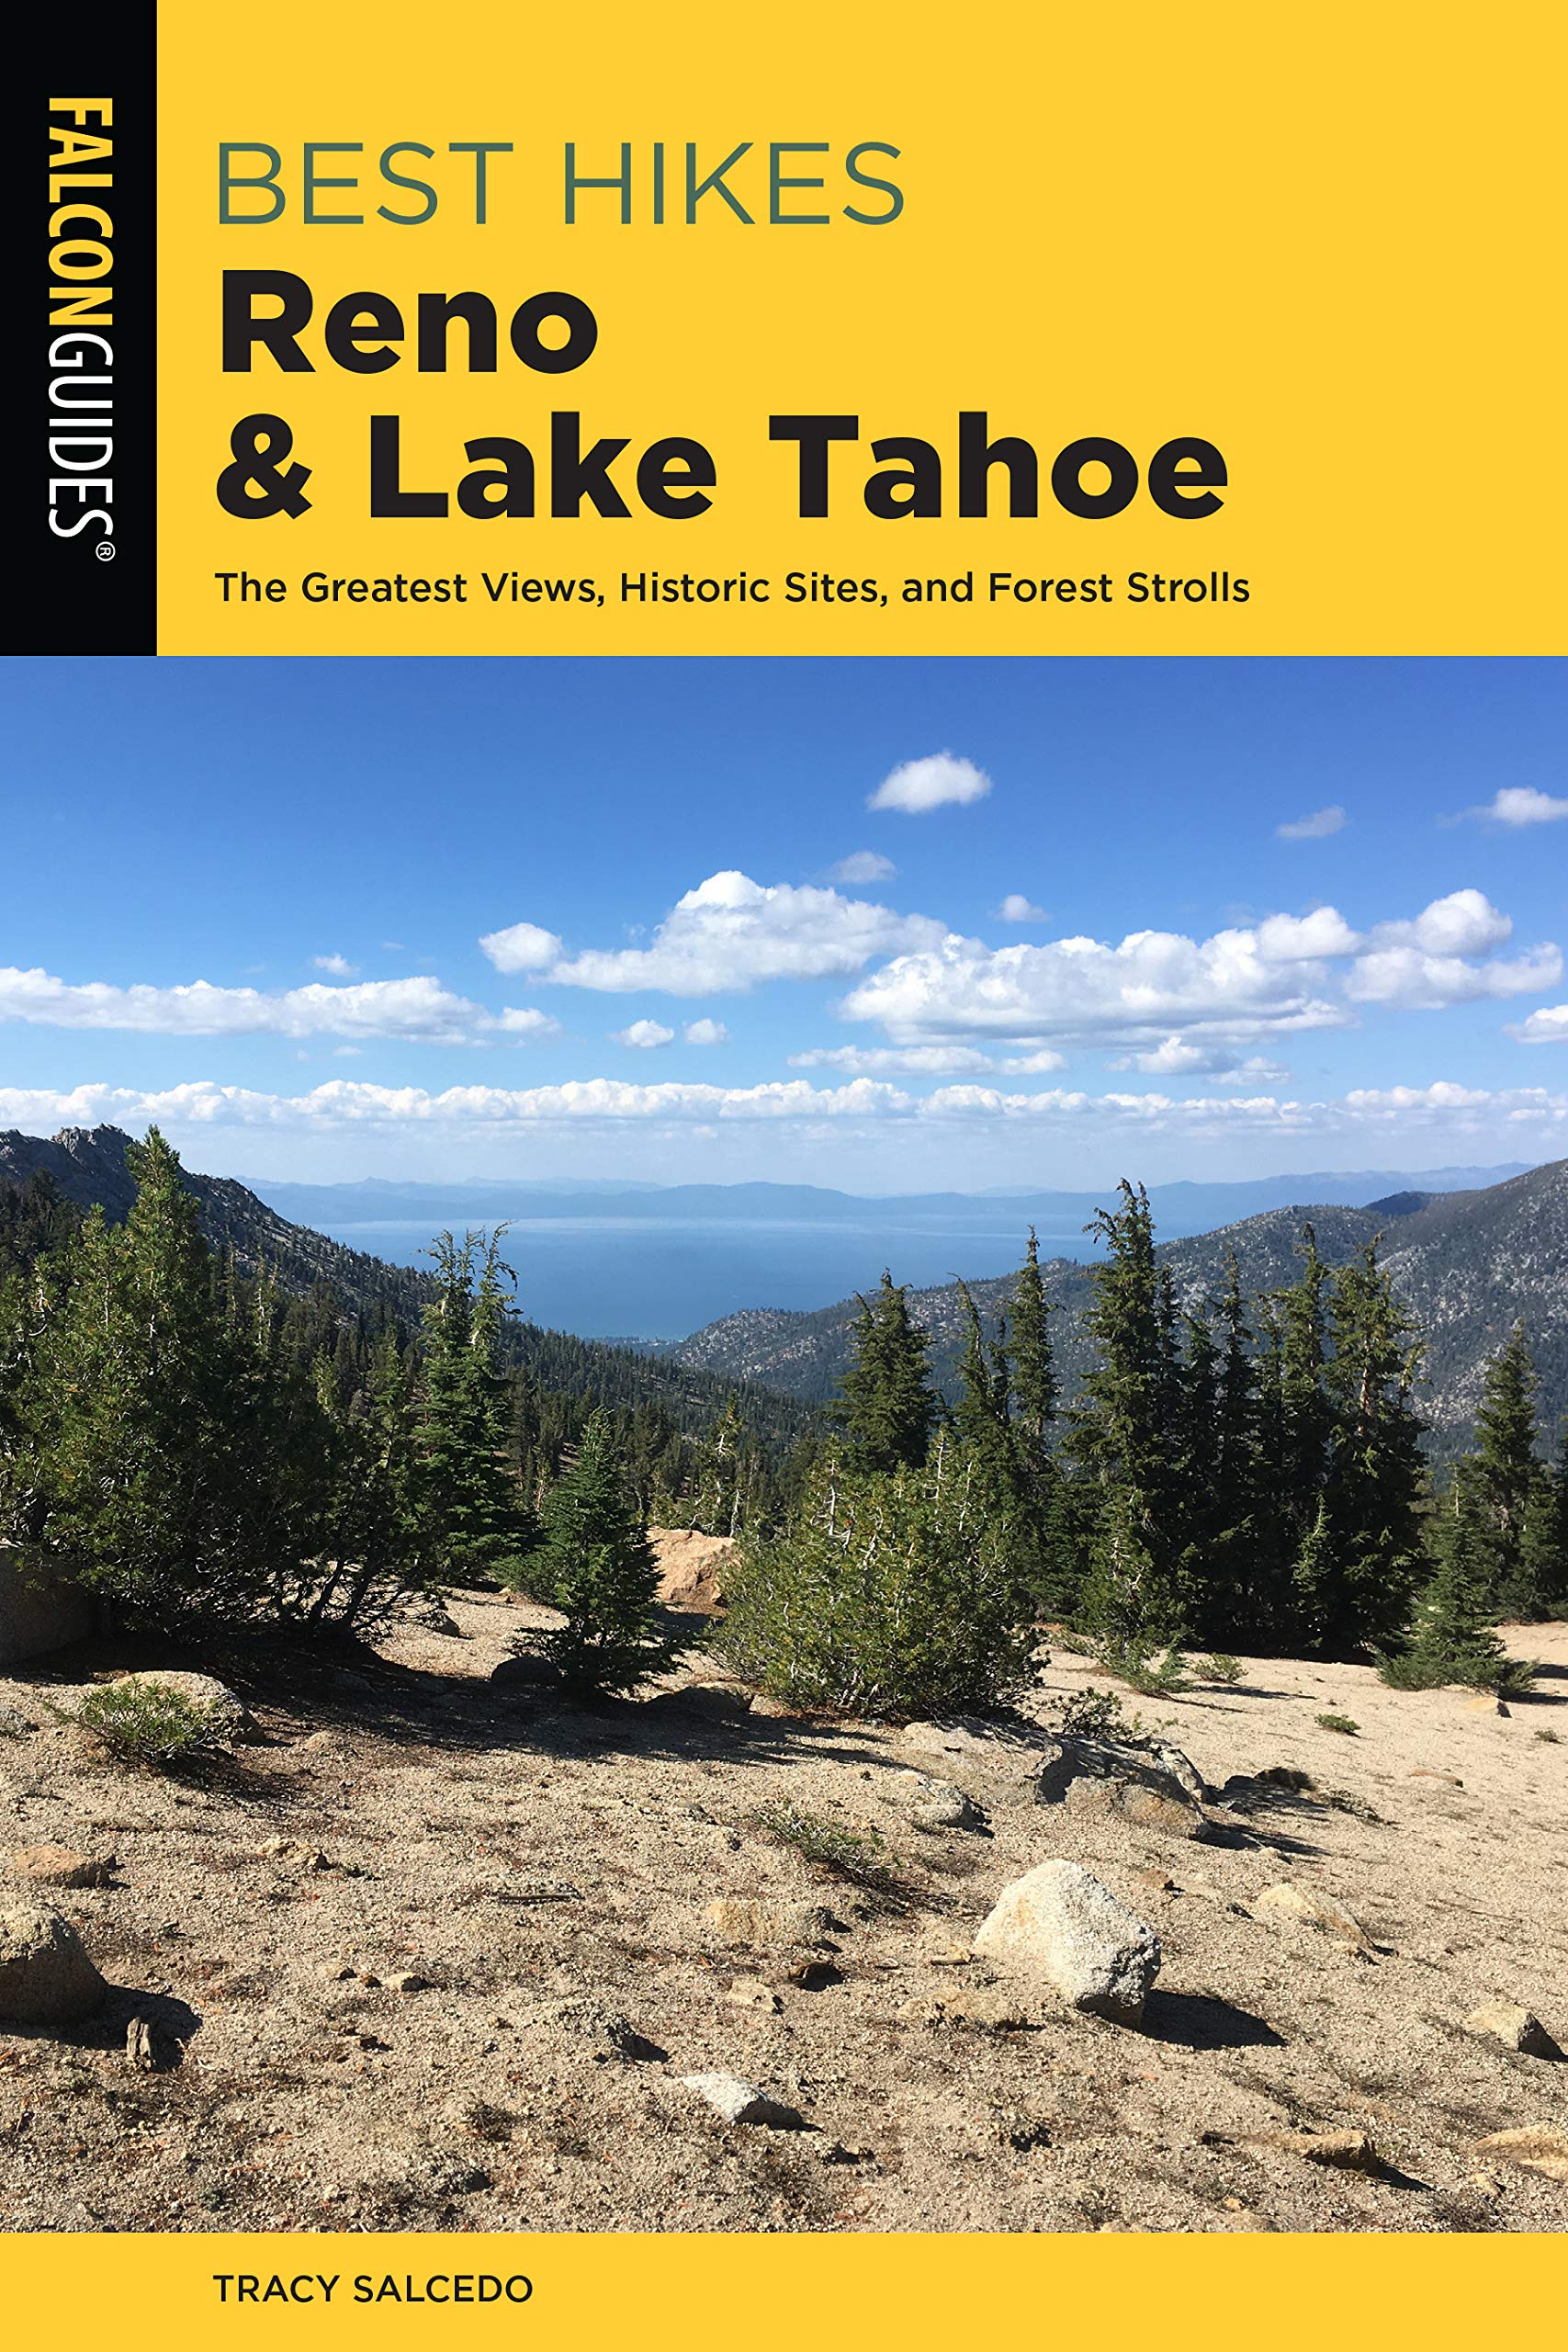 Best Hikes Reno and Lake Tahoe: The Greatest Views, Historic Sites, and Forest Strolls (Best Hikes Near Series)